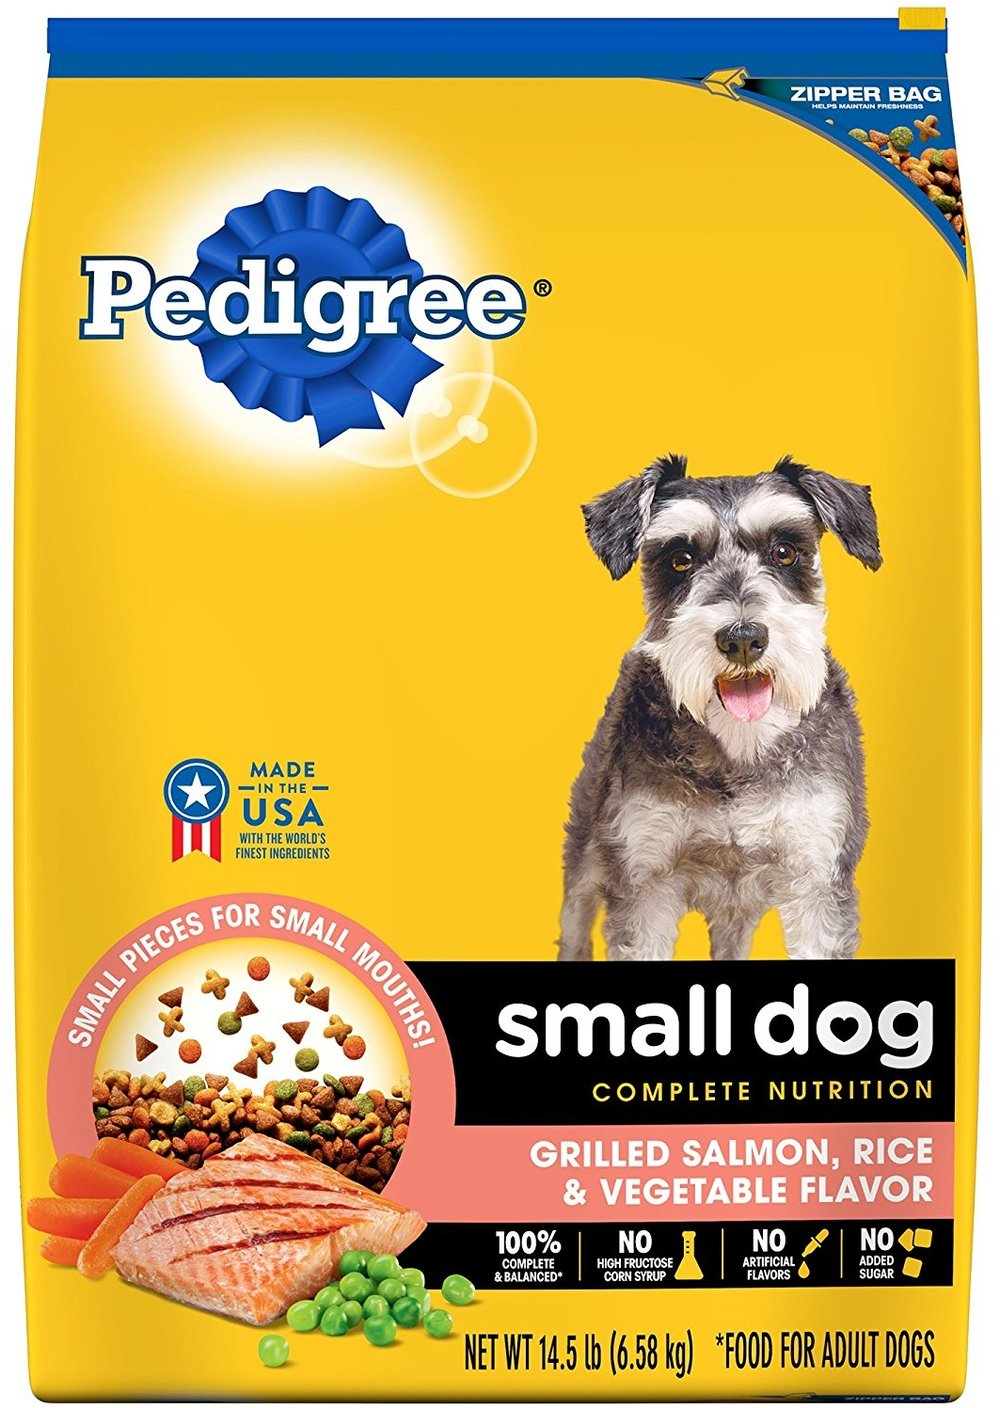 PEDIGREE Small Dog Adult Complete Nutrition Grilled Salmon, Rice and Vegetable Flavor Dog Food 14.5 Pounds.jpg